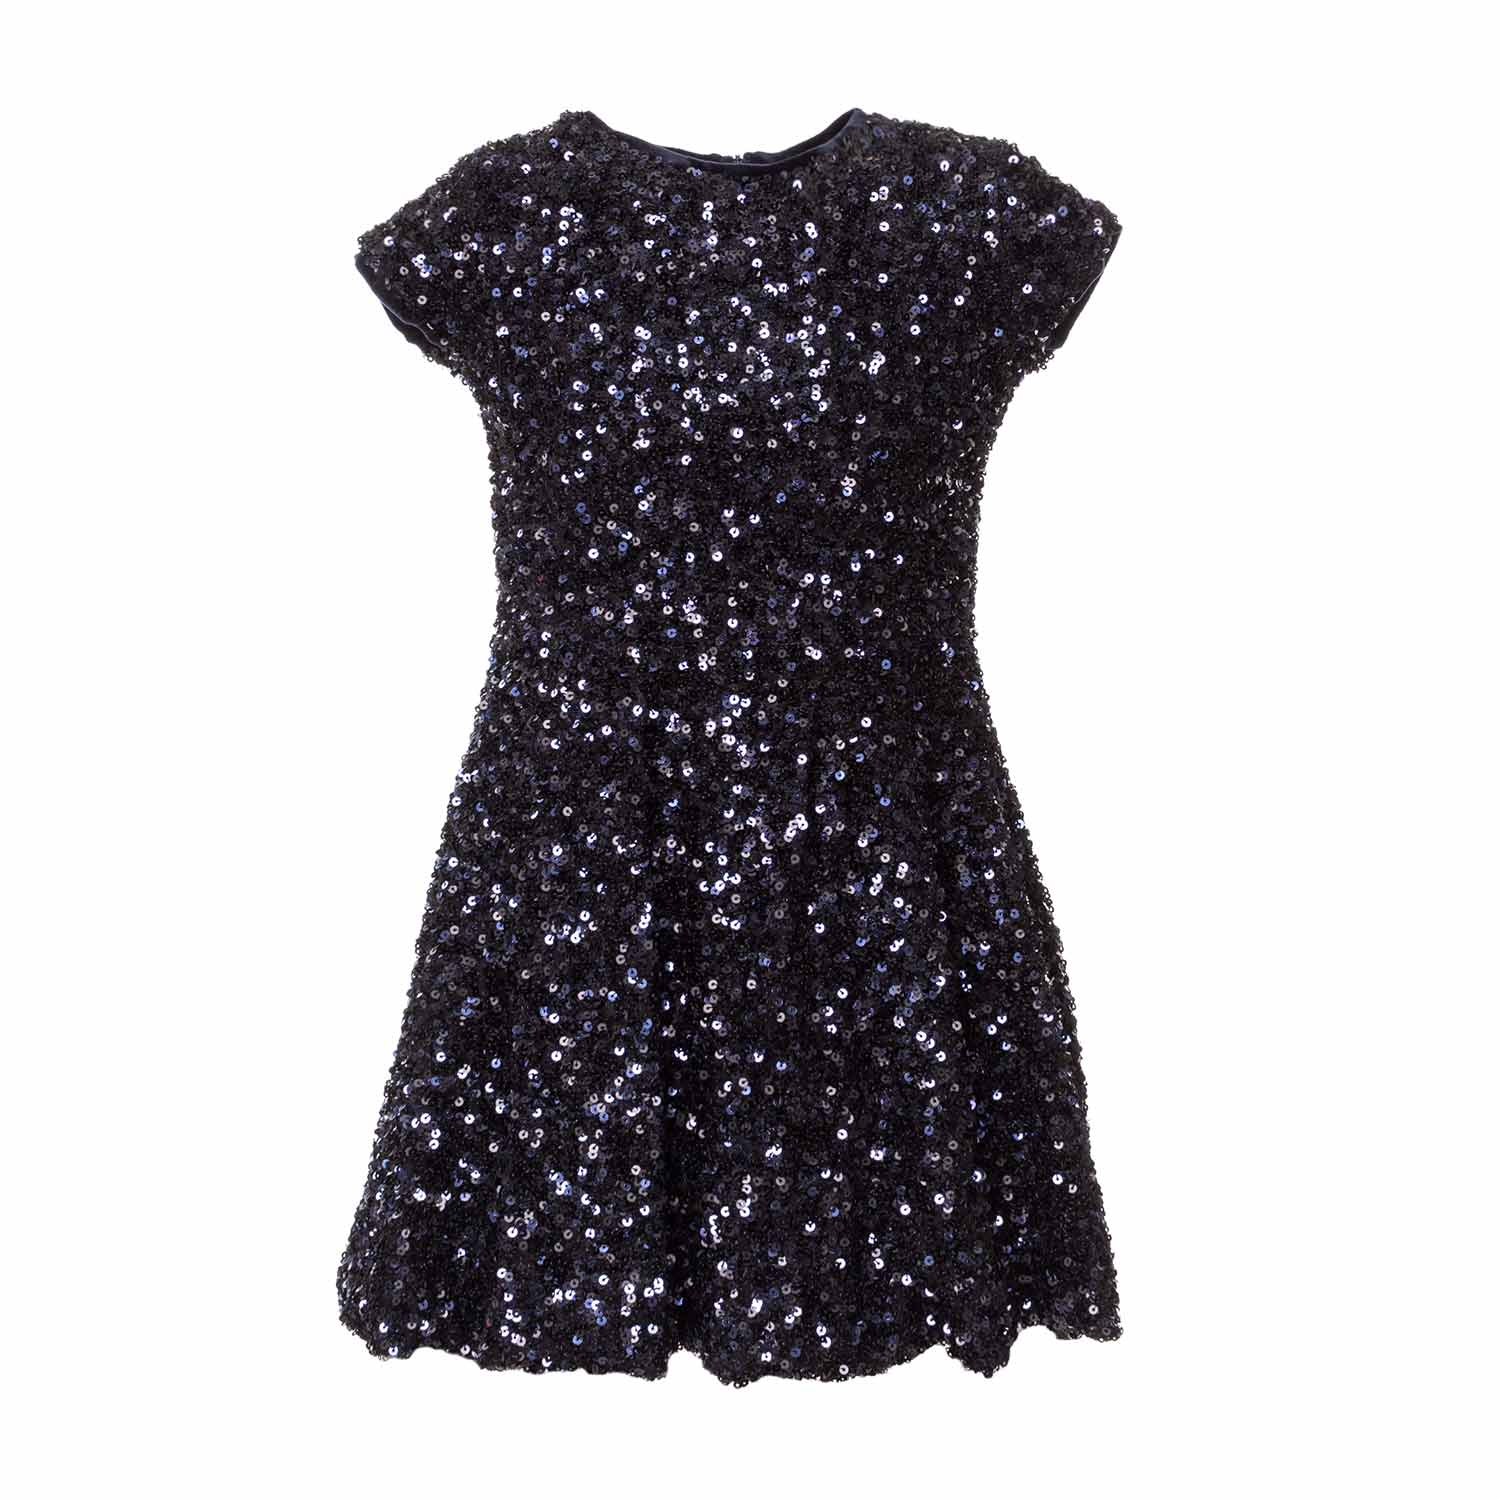 9d32b0108339 Elsy - Girl Blue Sequin Dress - annameglio.com shop online